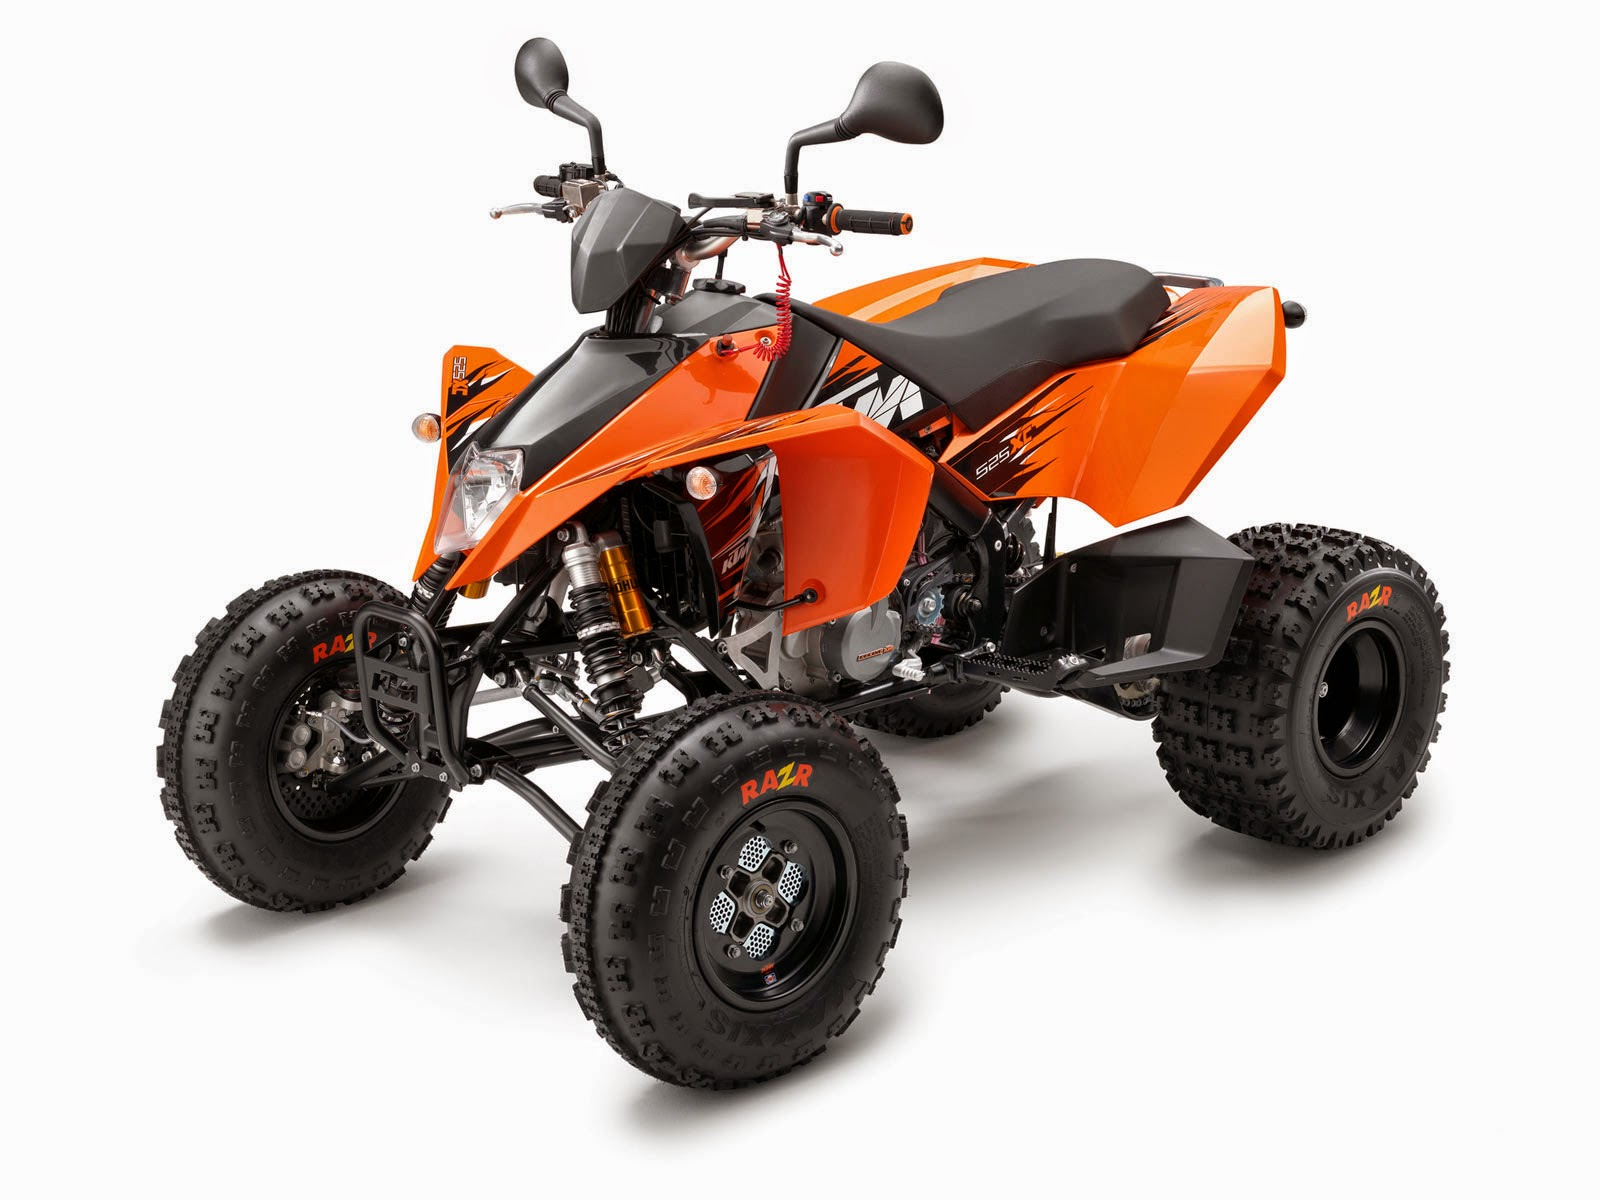 bike cars hd wallpapers ktm 450 xc 525 xc atv upcoming models. Black Bedroom Furniture Sets. Home Design Ideas